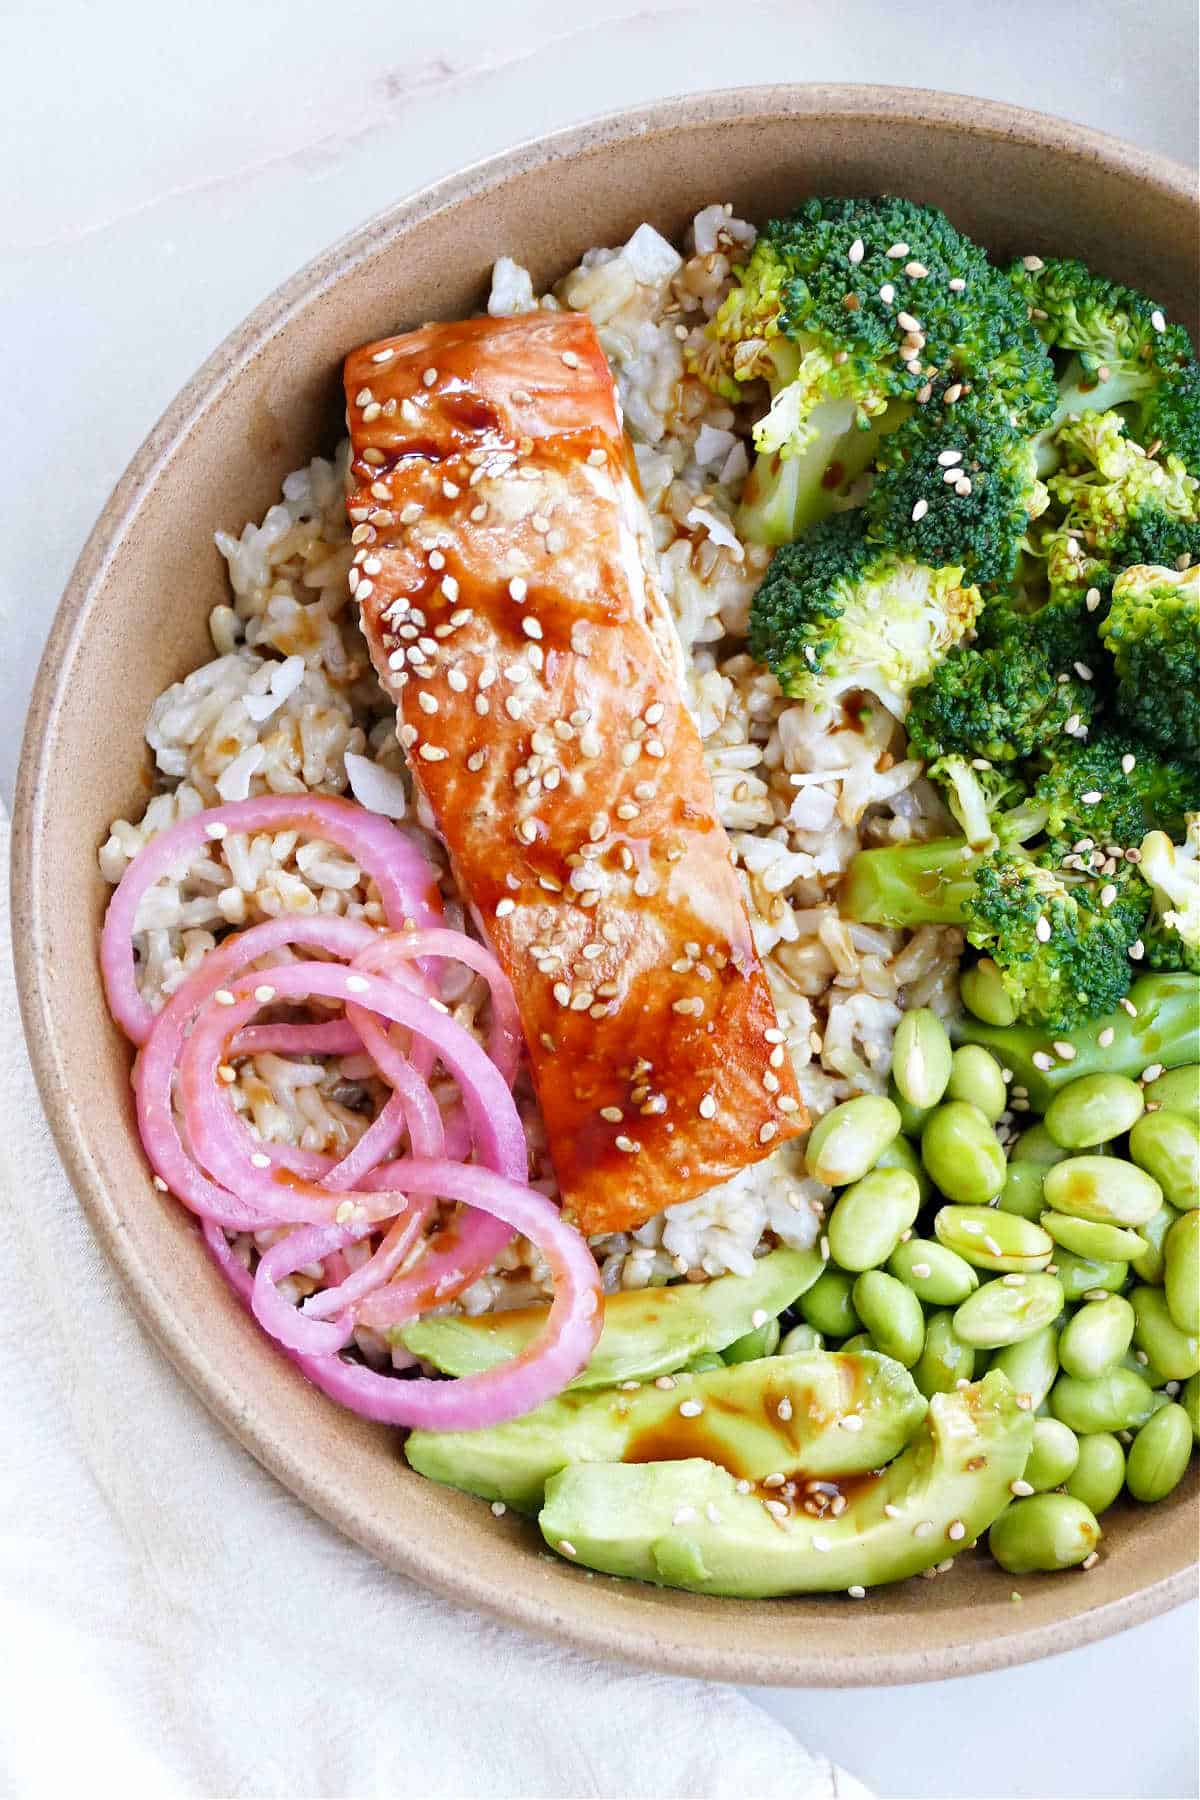 teriyaki salmon, pickled onions, broccoli, edamame, and avocado over rice in a serving bowl